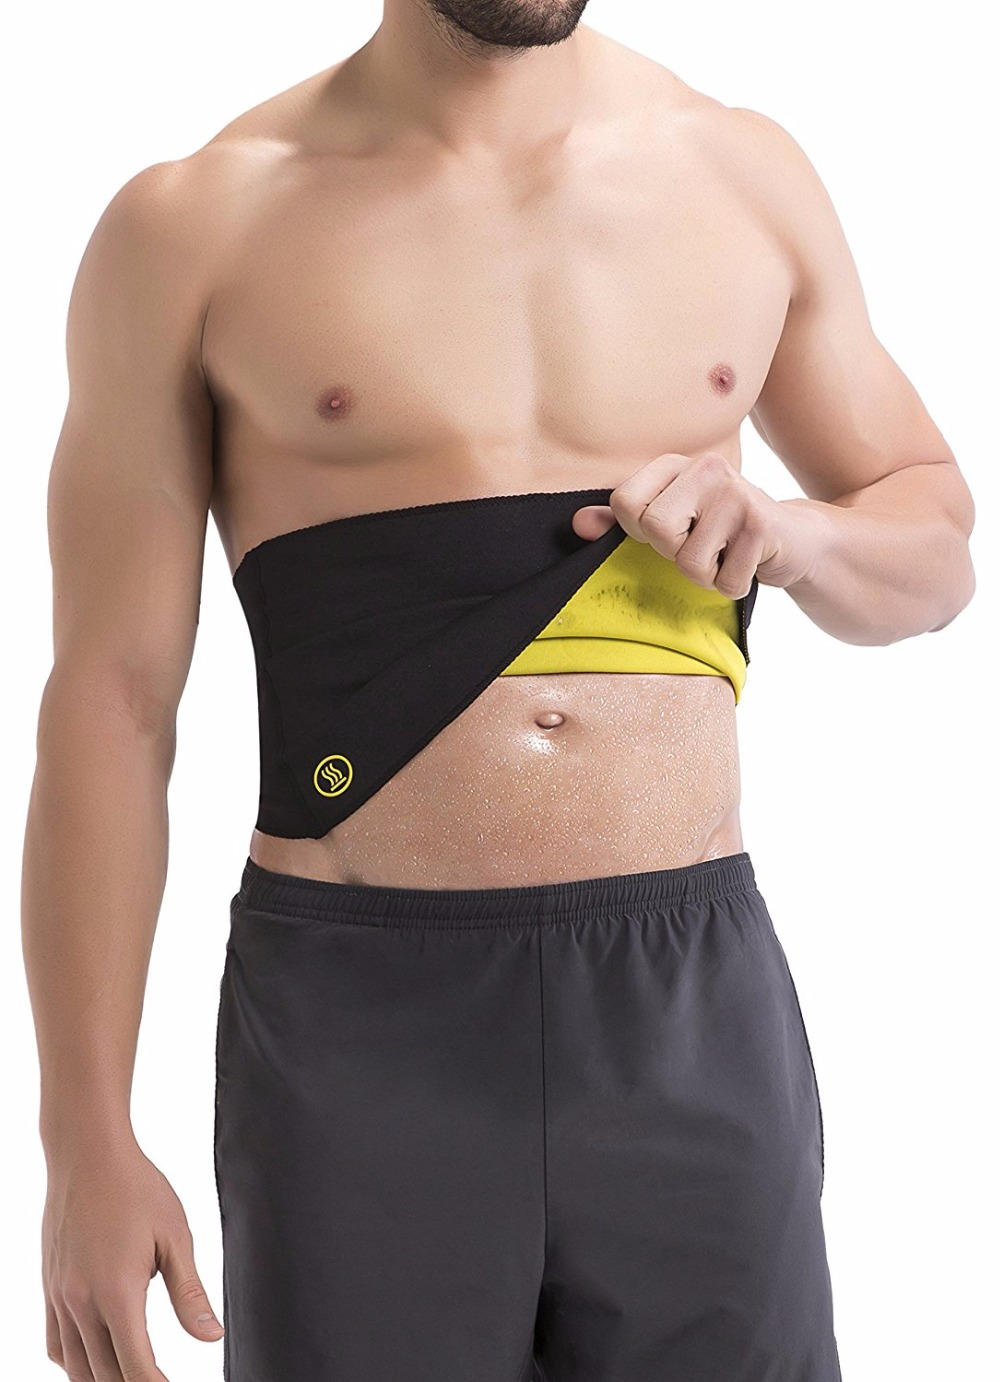 Hot Shapers Thermal Hot Belt For Men Slimming Compression And Calorie Burning Activewear Free Shipping